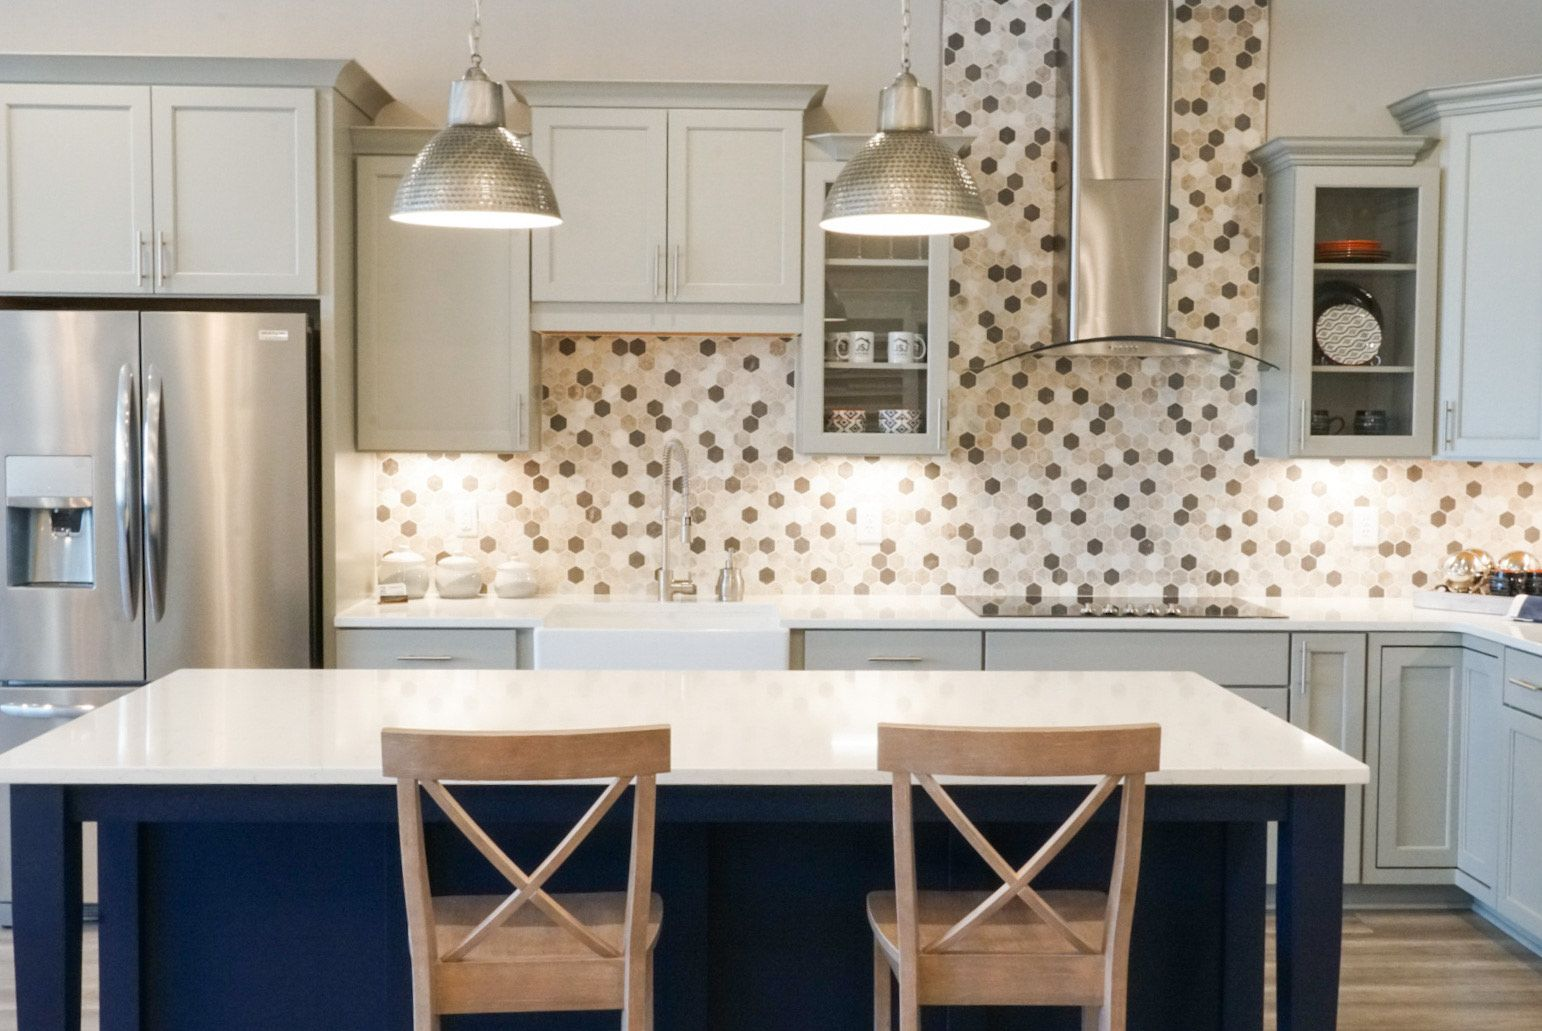 We Love The Mix Of Gray Cabinets And The Blue Island Our Customers Can See This Beautiful Combination In Our New D In 2020 New Home Construction Kitchen Grey Cabinets